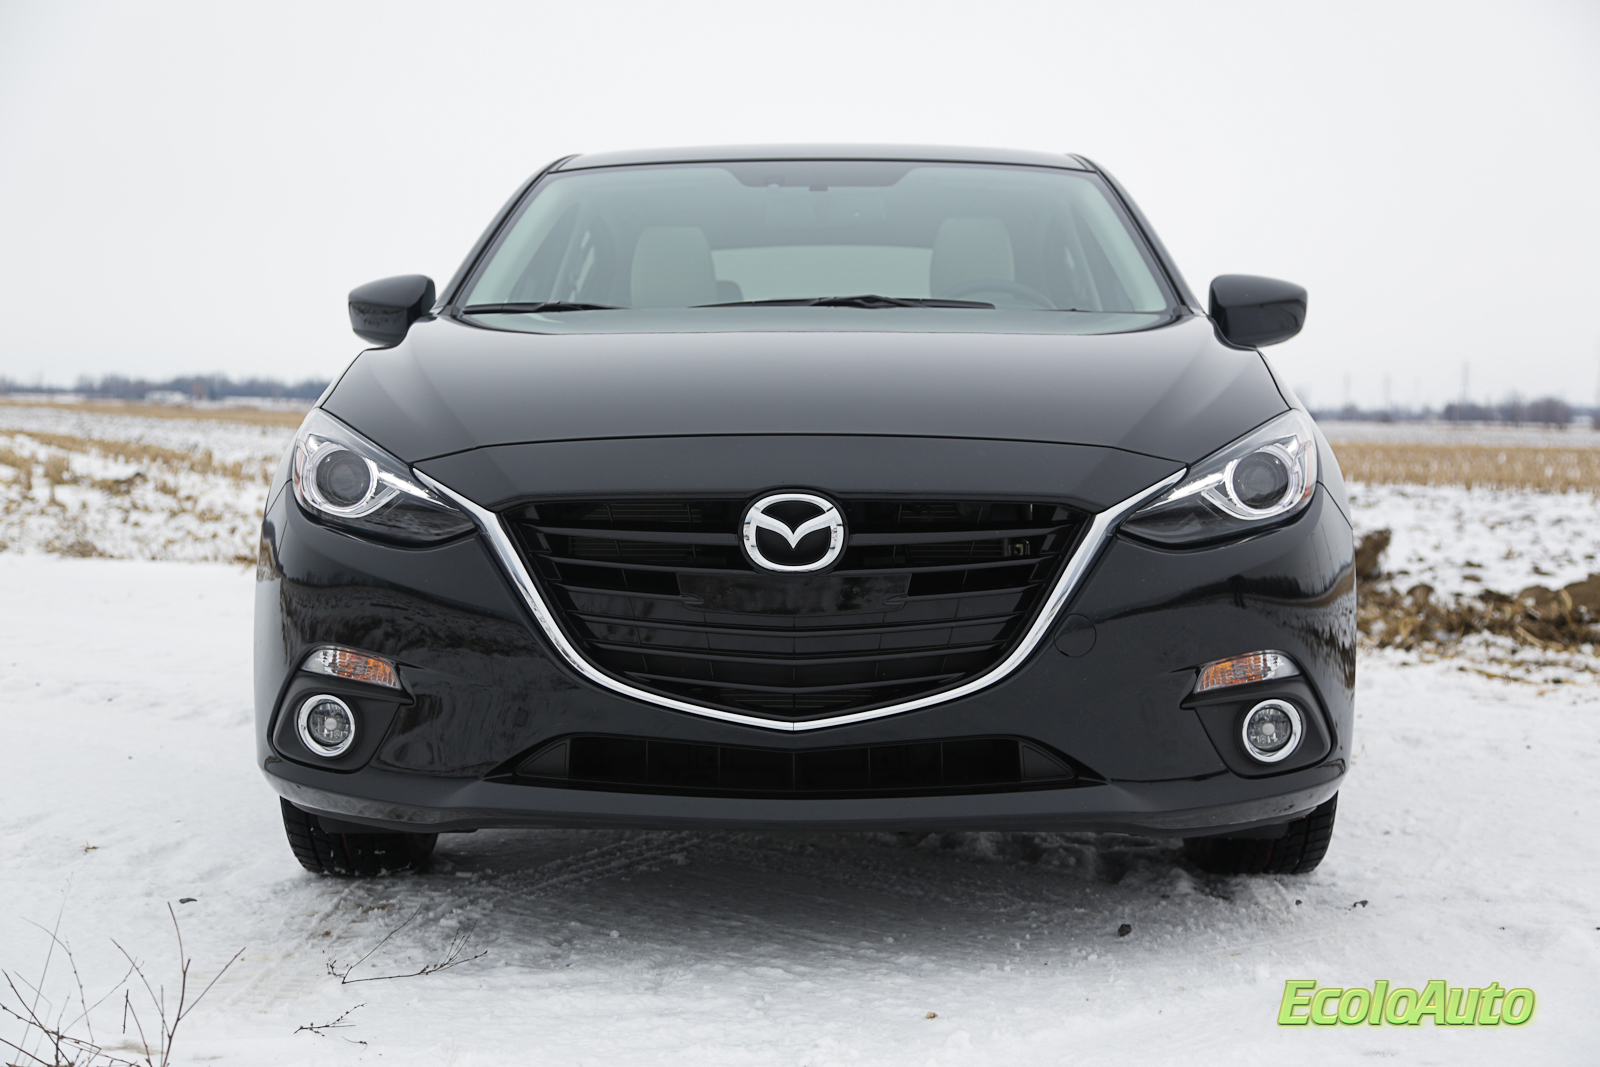 mazda 3 2014 essai routier 11 ecolo auto. Black Bedroom Furniture Sets. Home Design Ideas